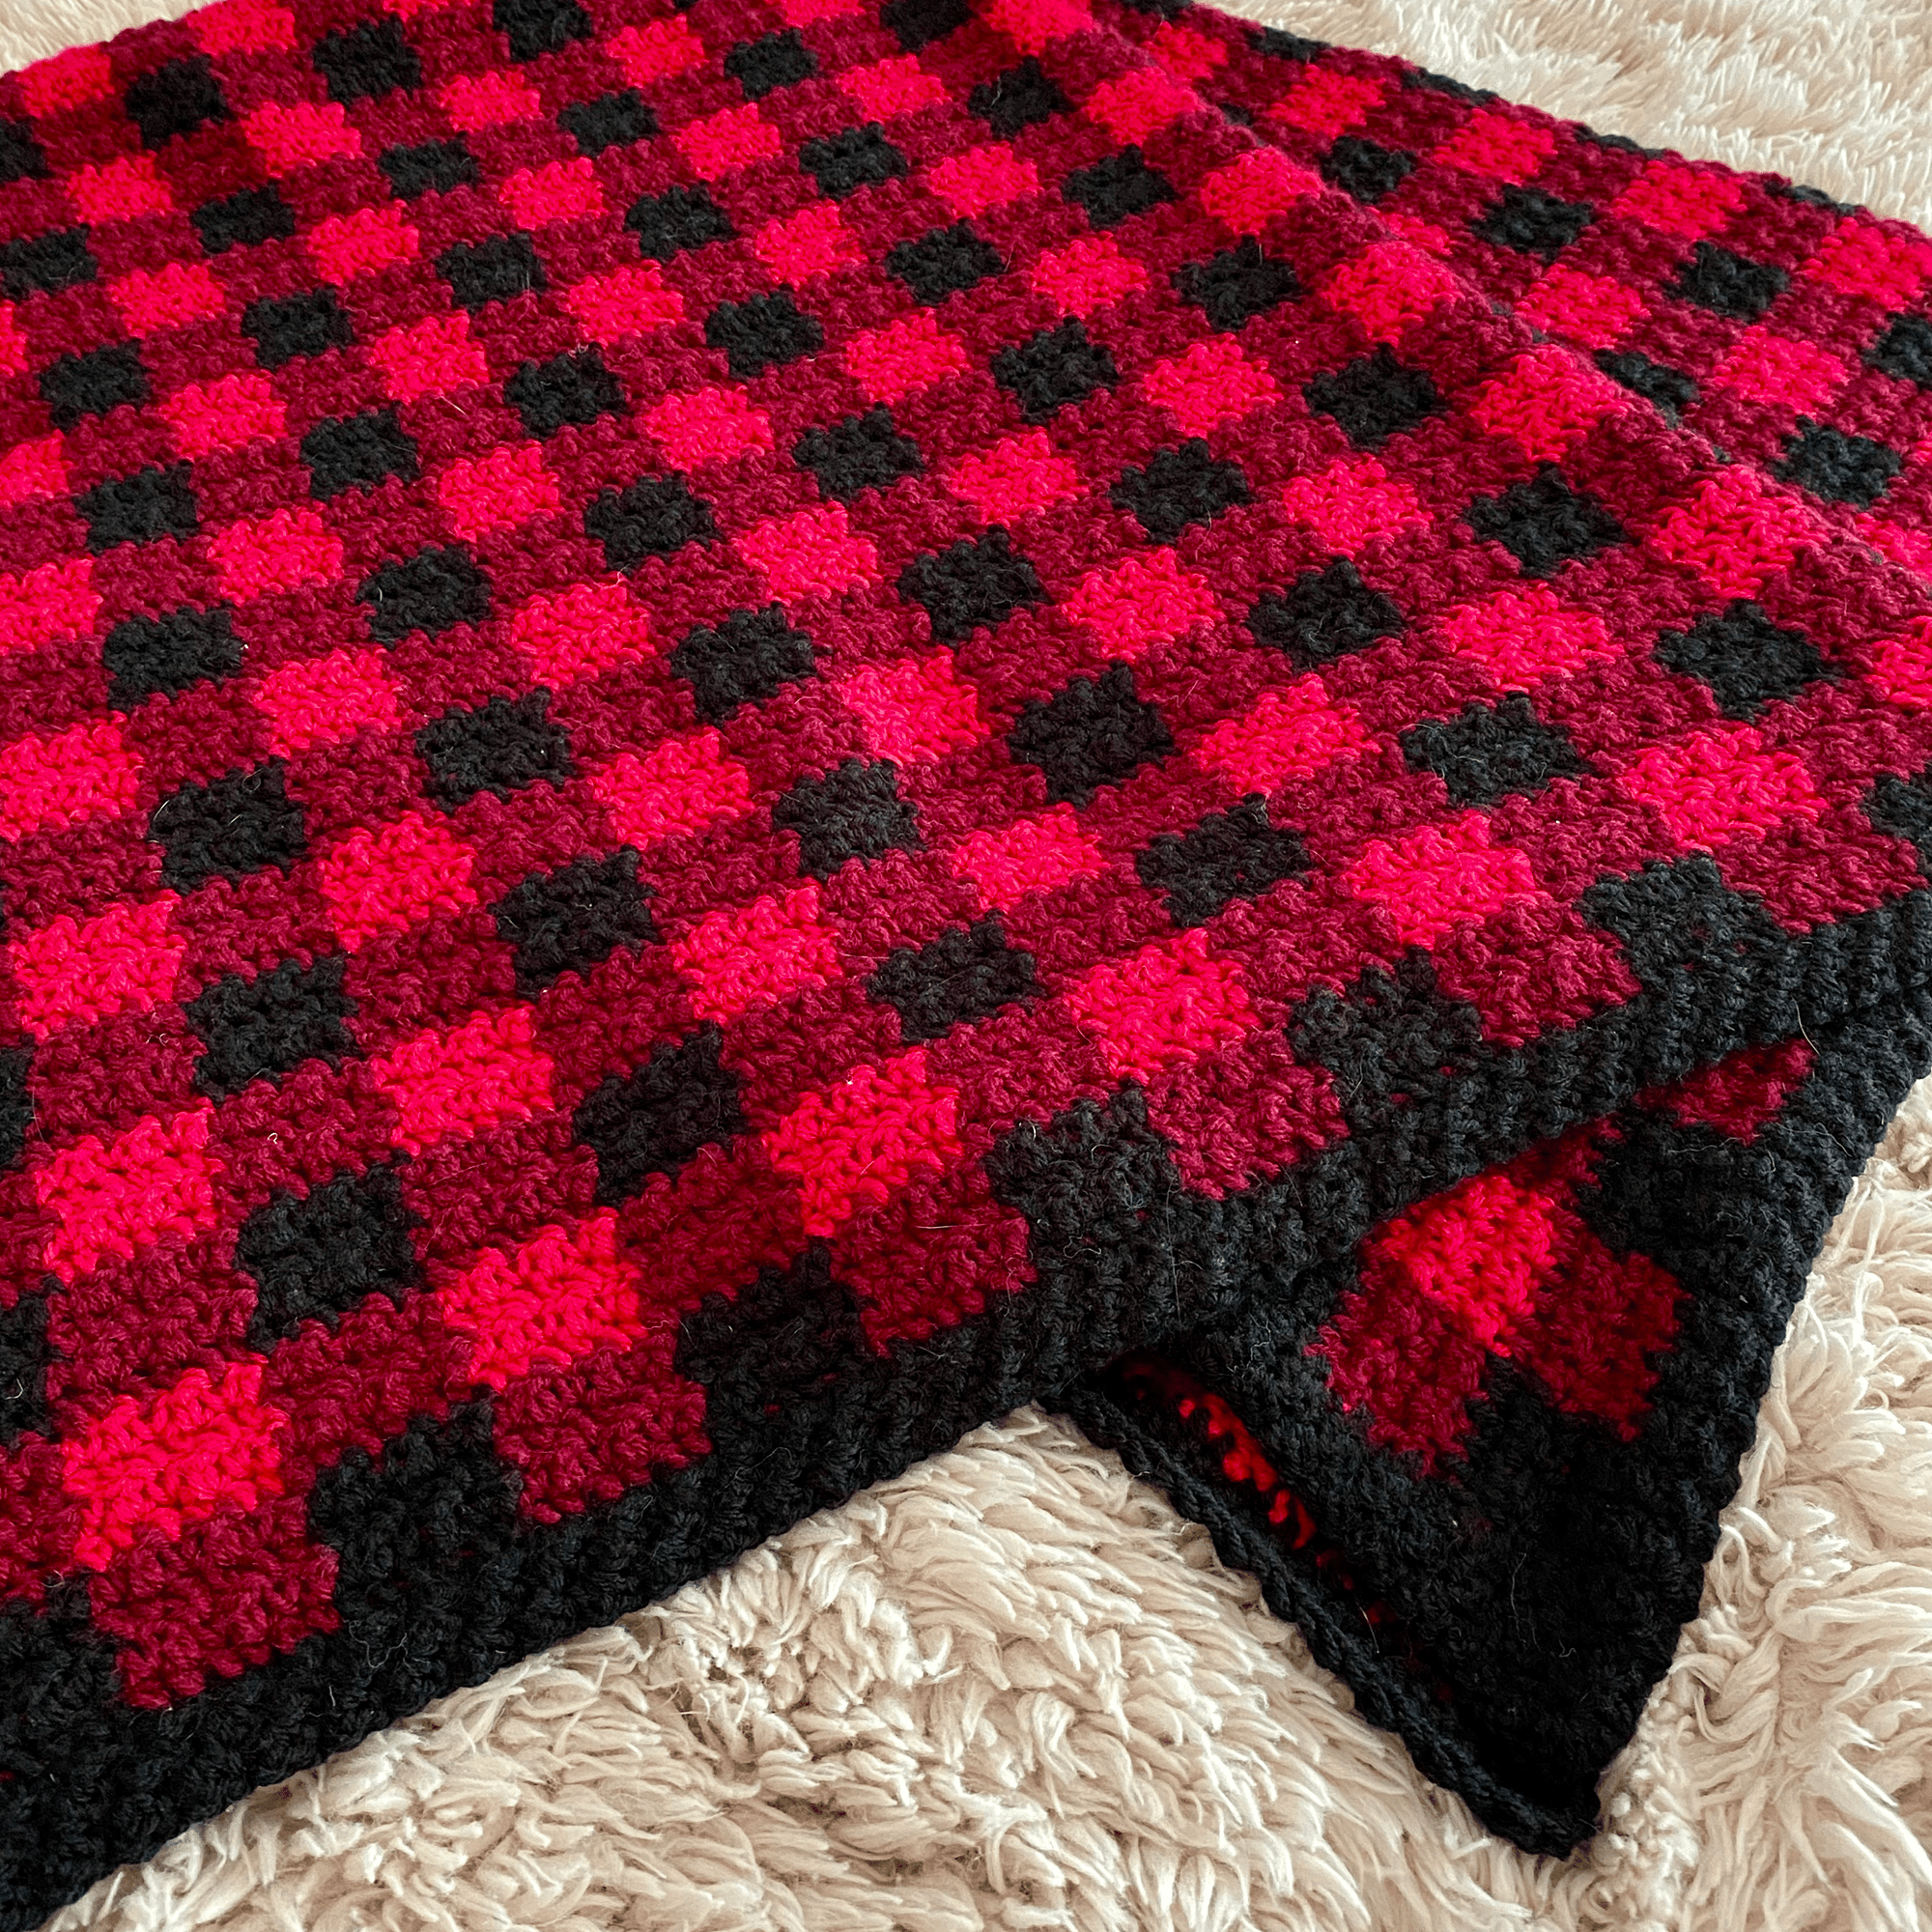 A cozy buffalo plaid or gingham crocheted afghan